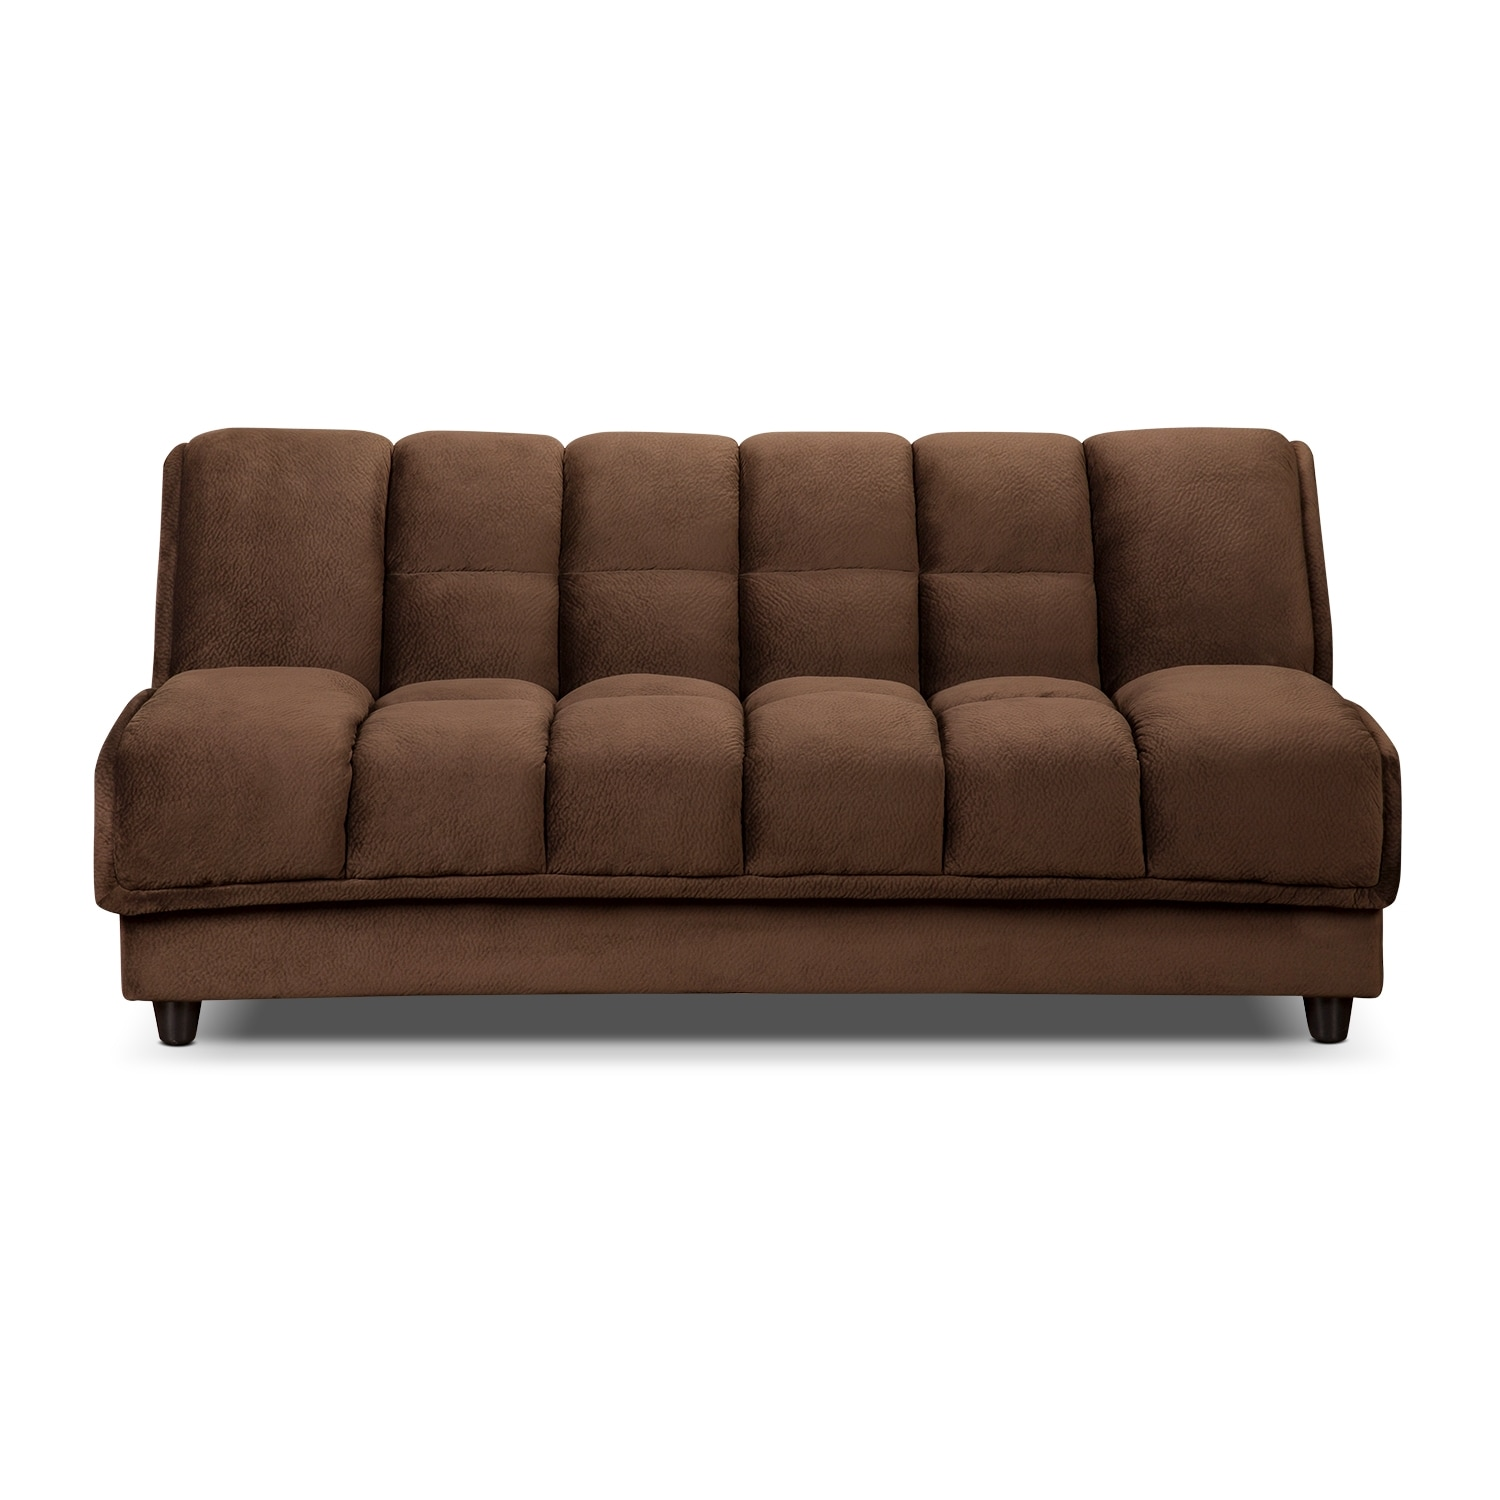 Bobs Furniture Futon Home Decor